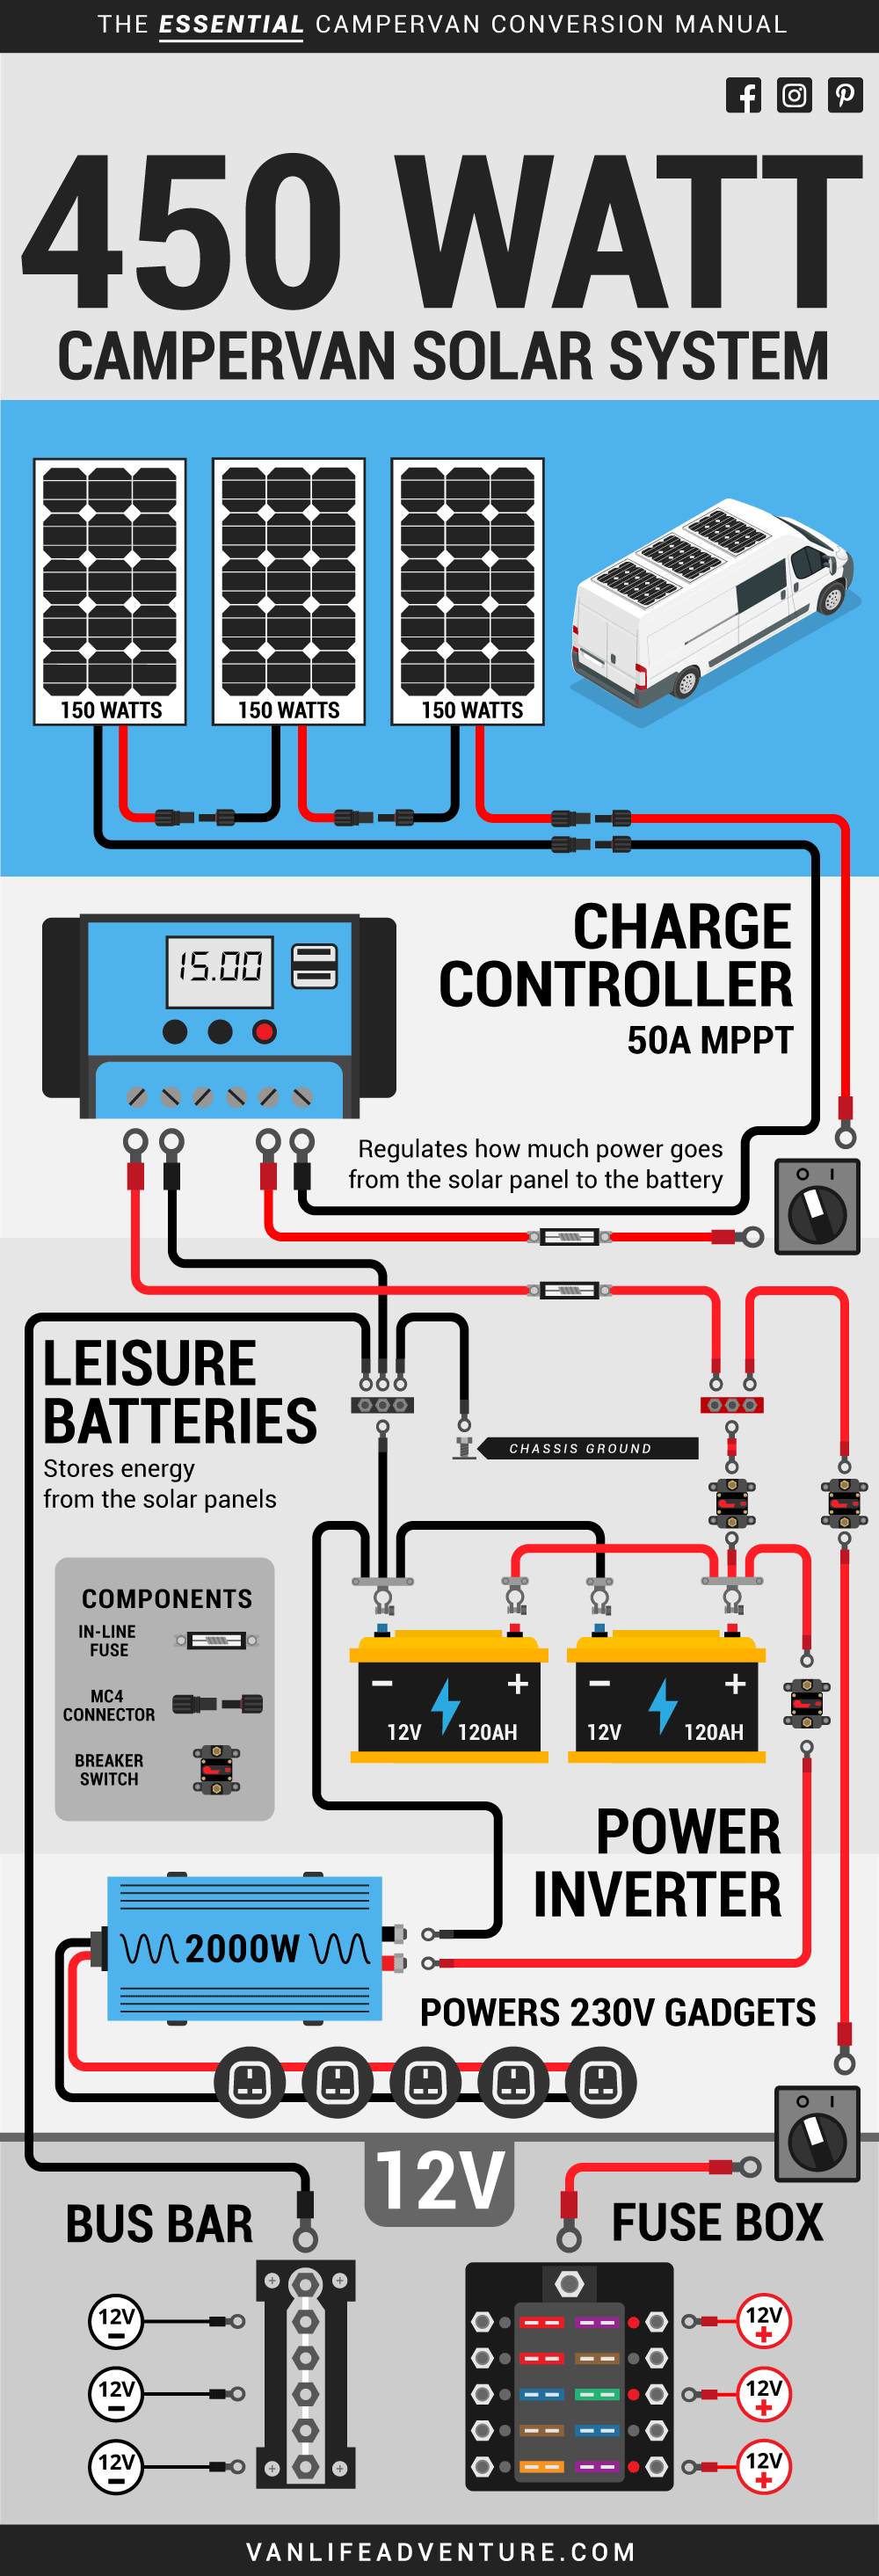 Solar Panels Wiring Diagram from www.vanlifeadventure.com